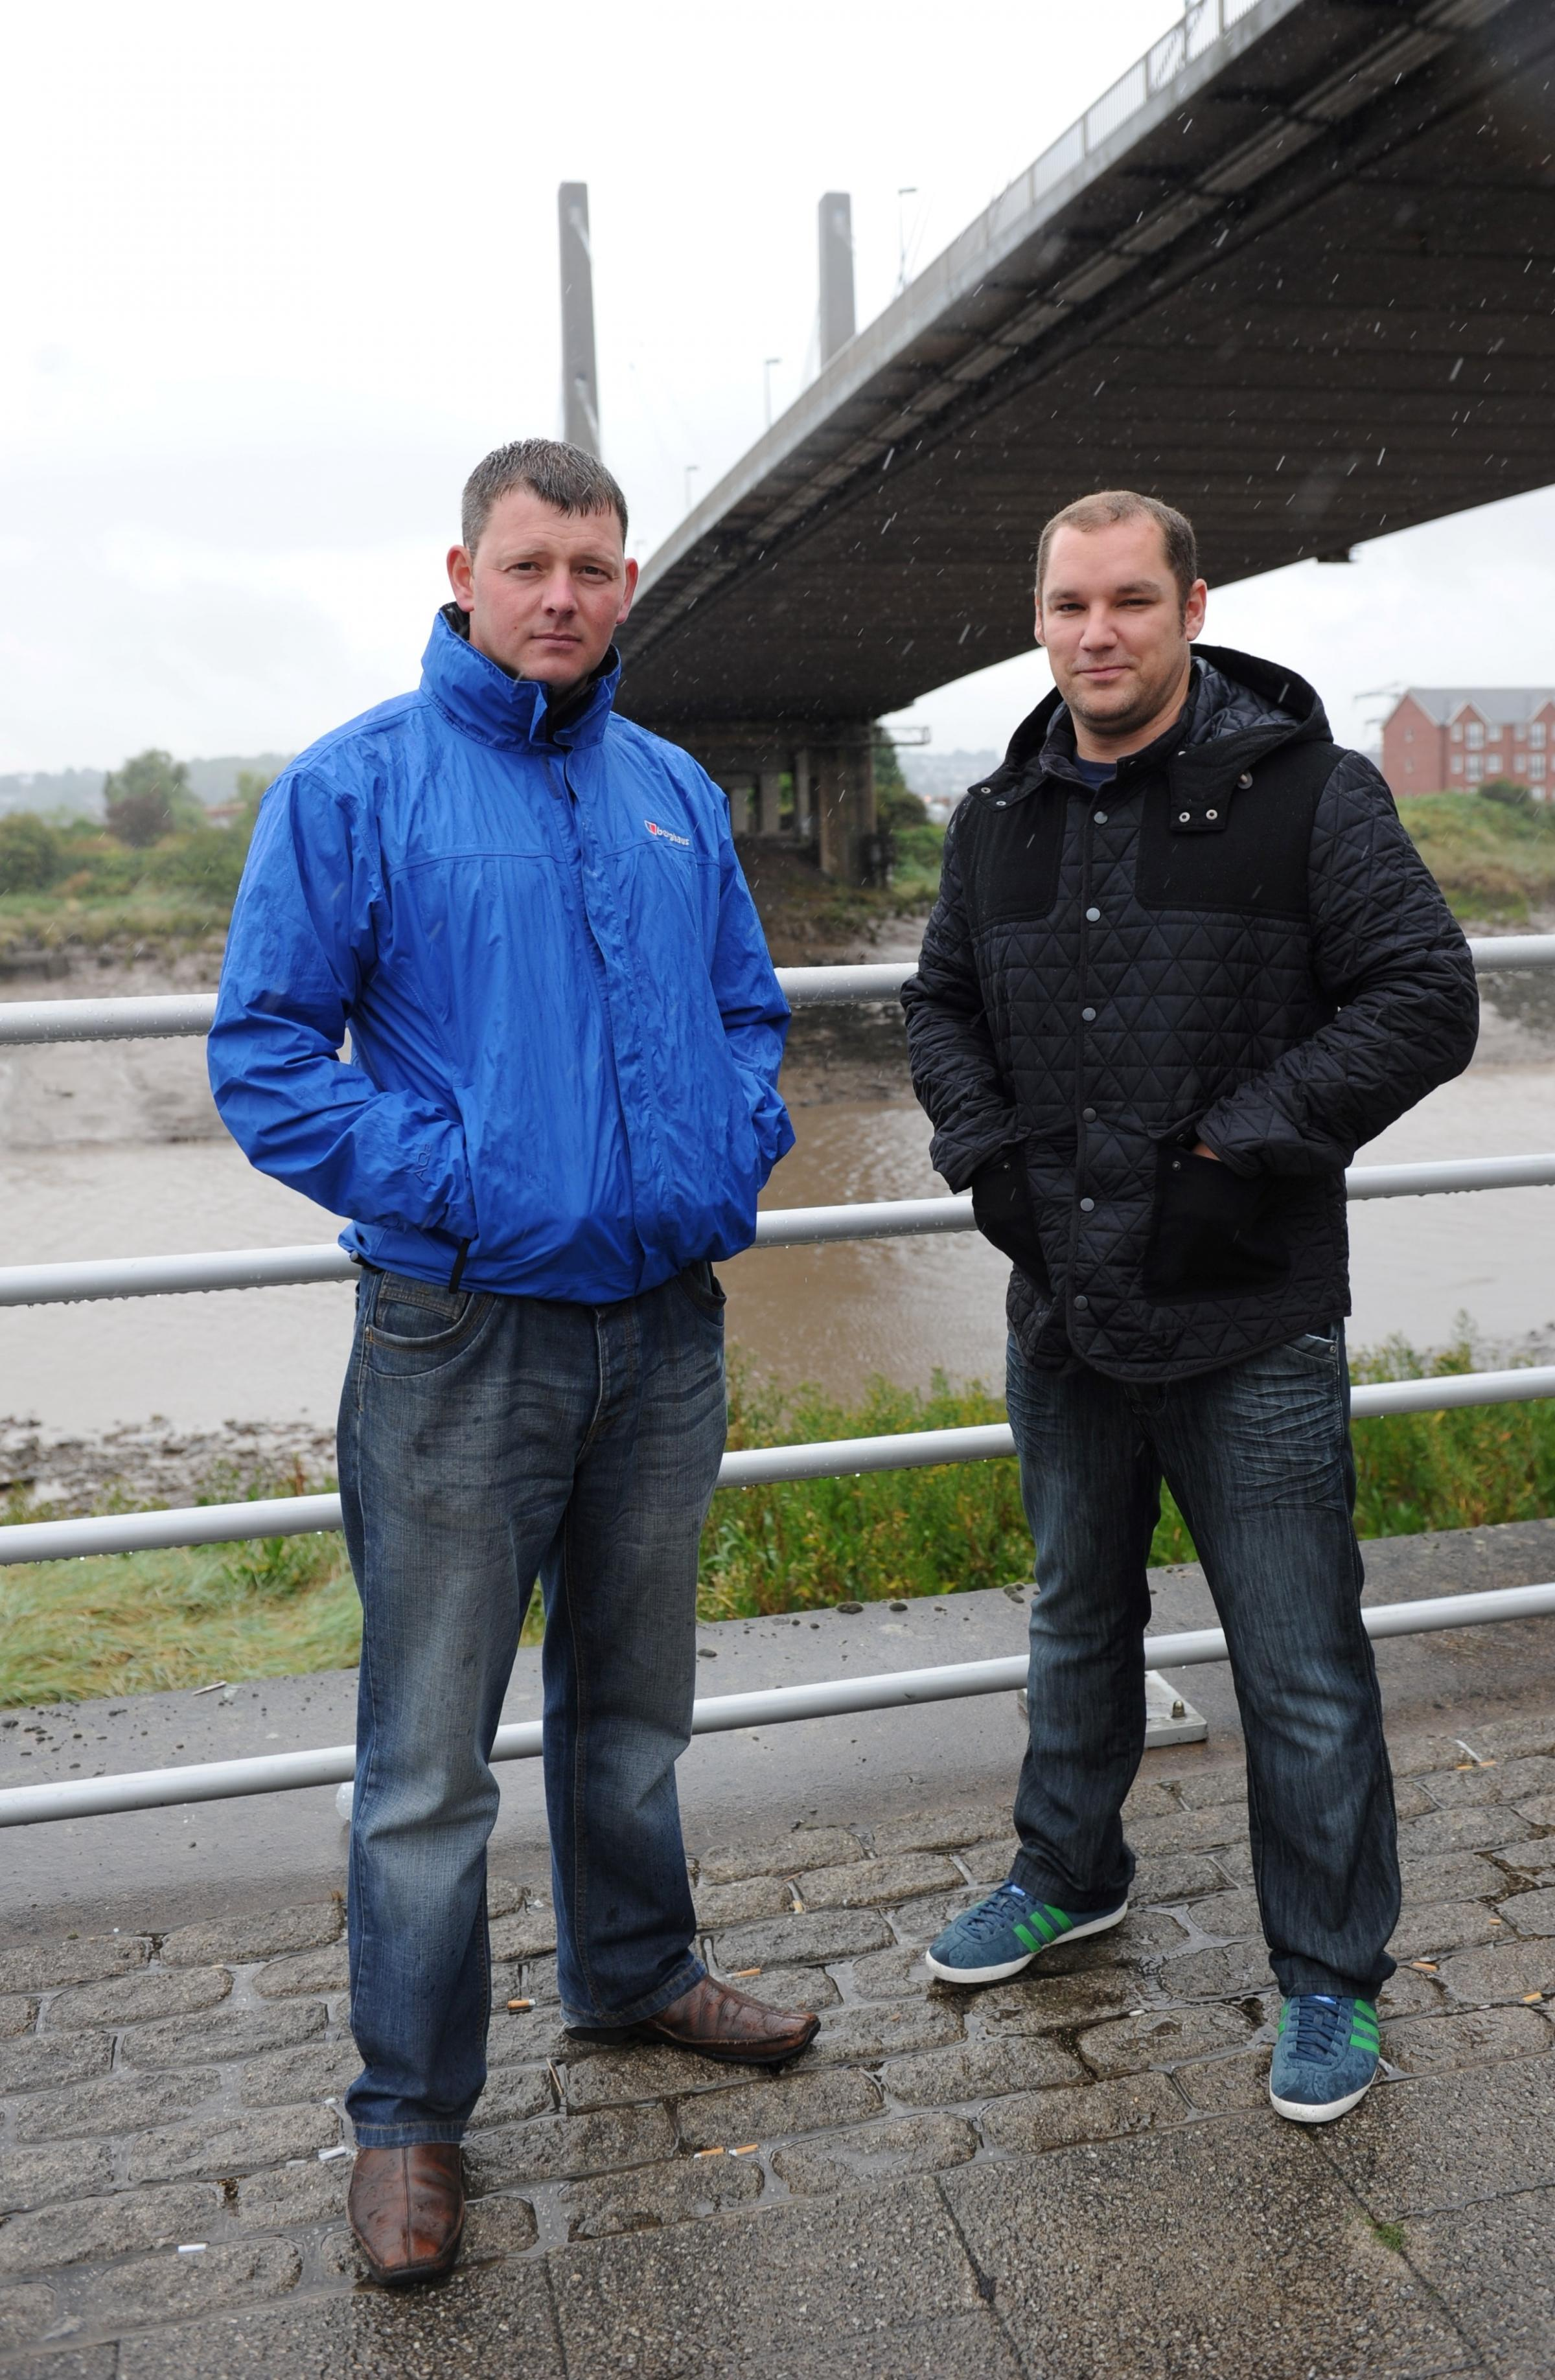 Police hail pair who saved man from drowning in Newport